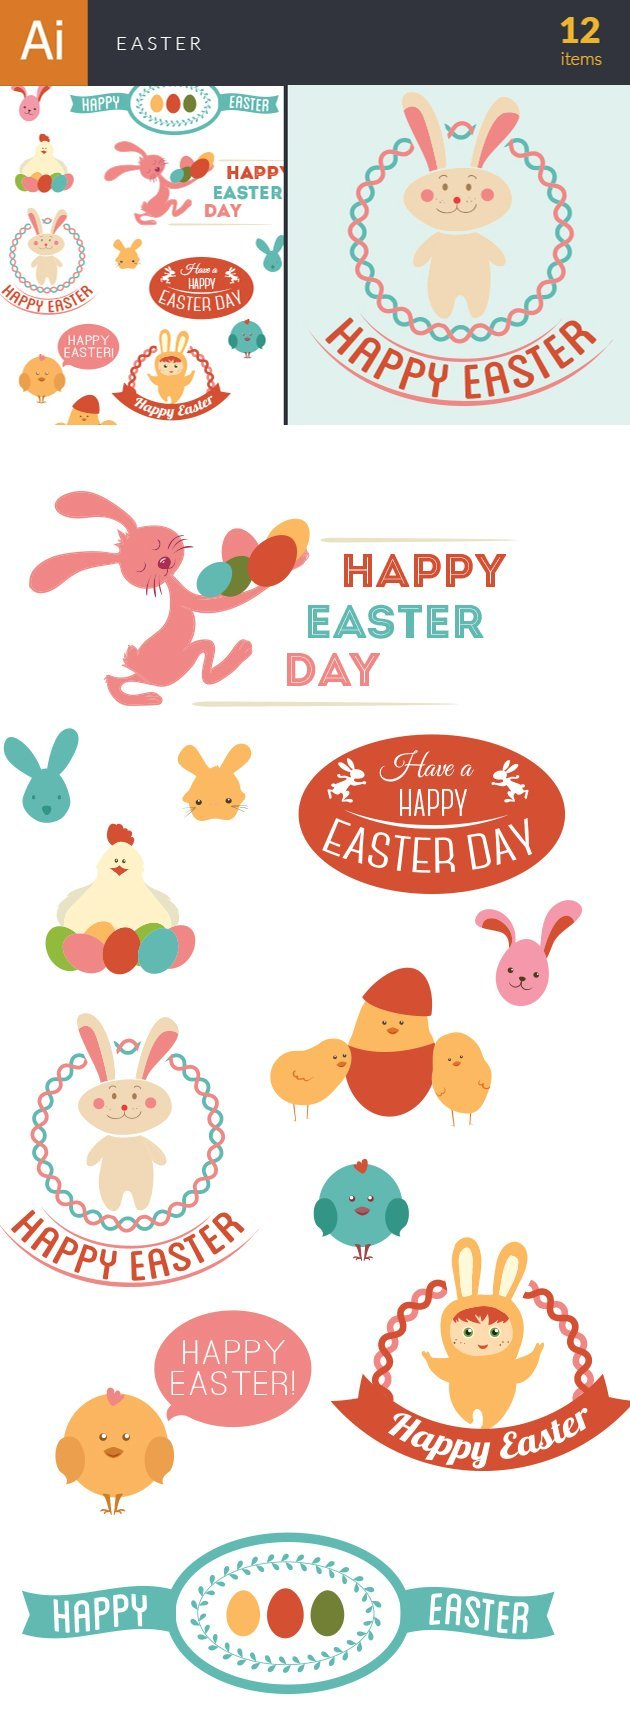 Vector Easter Elements 6 2